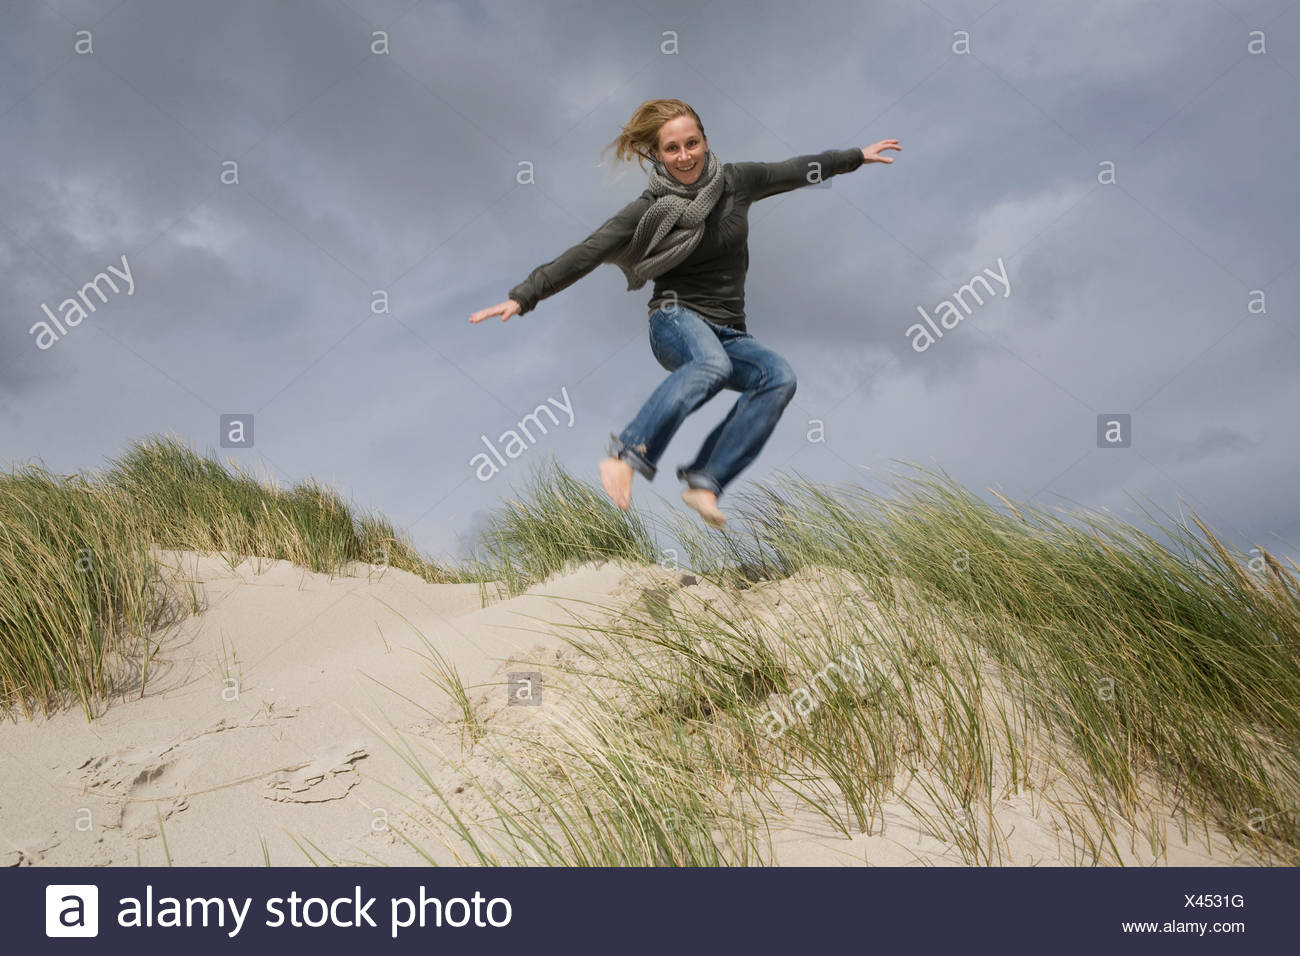 Germany, Schleswig Holstein, Woman in sand dunes, jumping - Stock Image